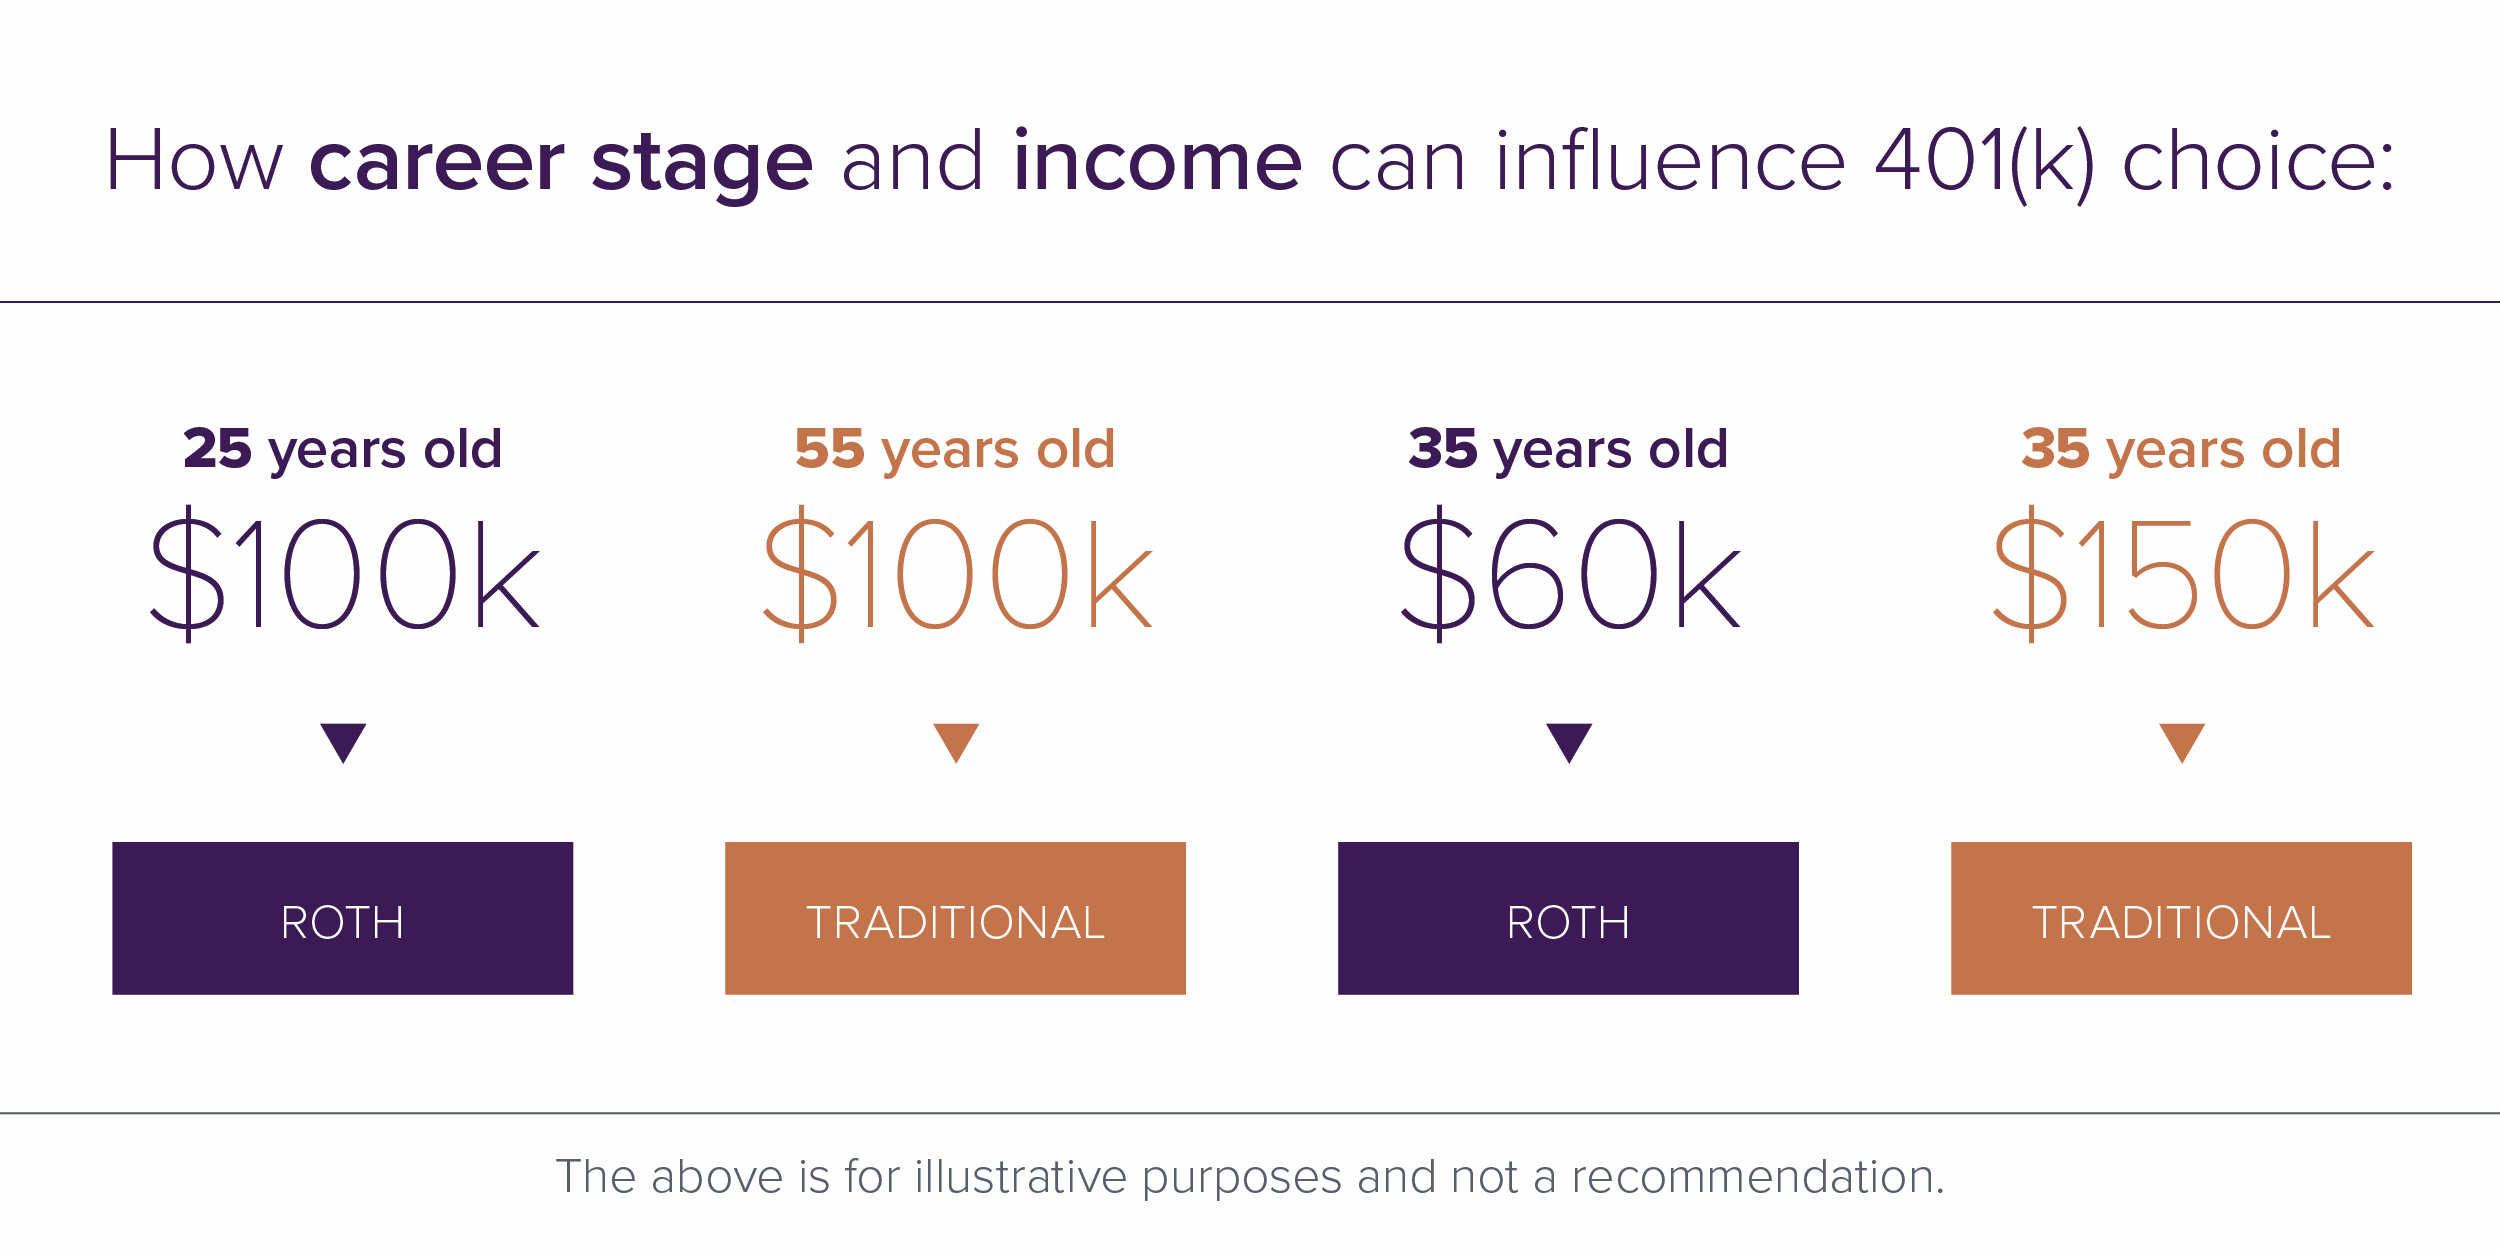 Career stage and income